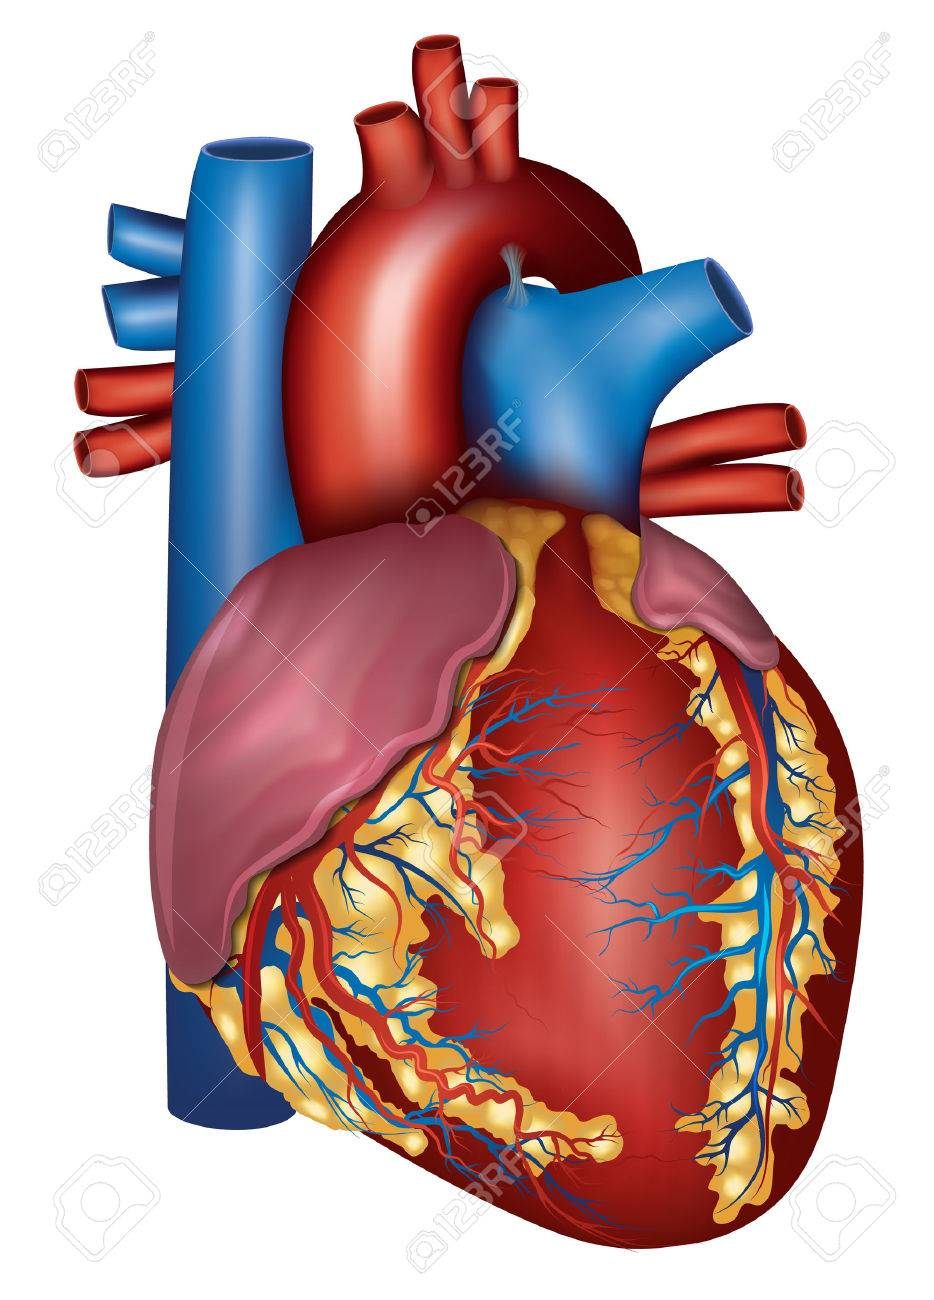 Human Heart Detailed Anatomy Isolated On A White Background